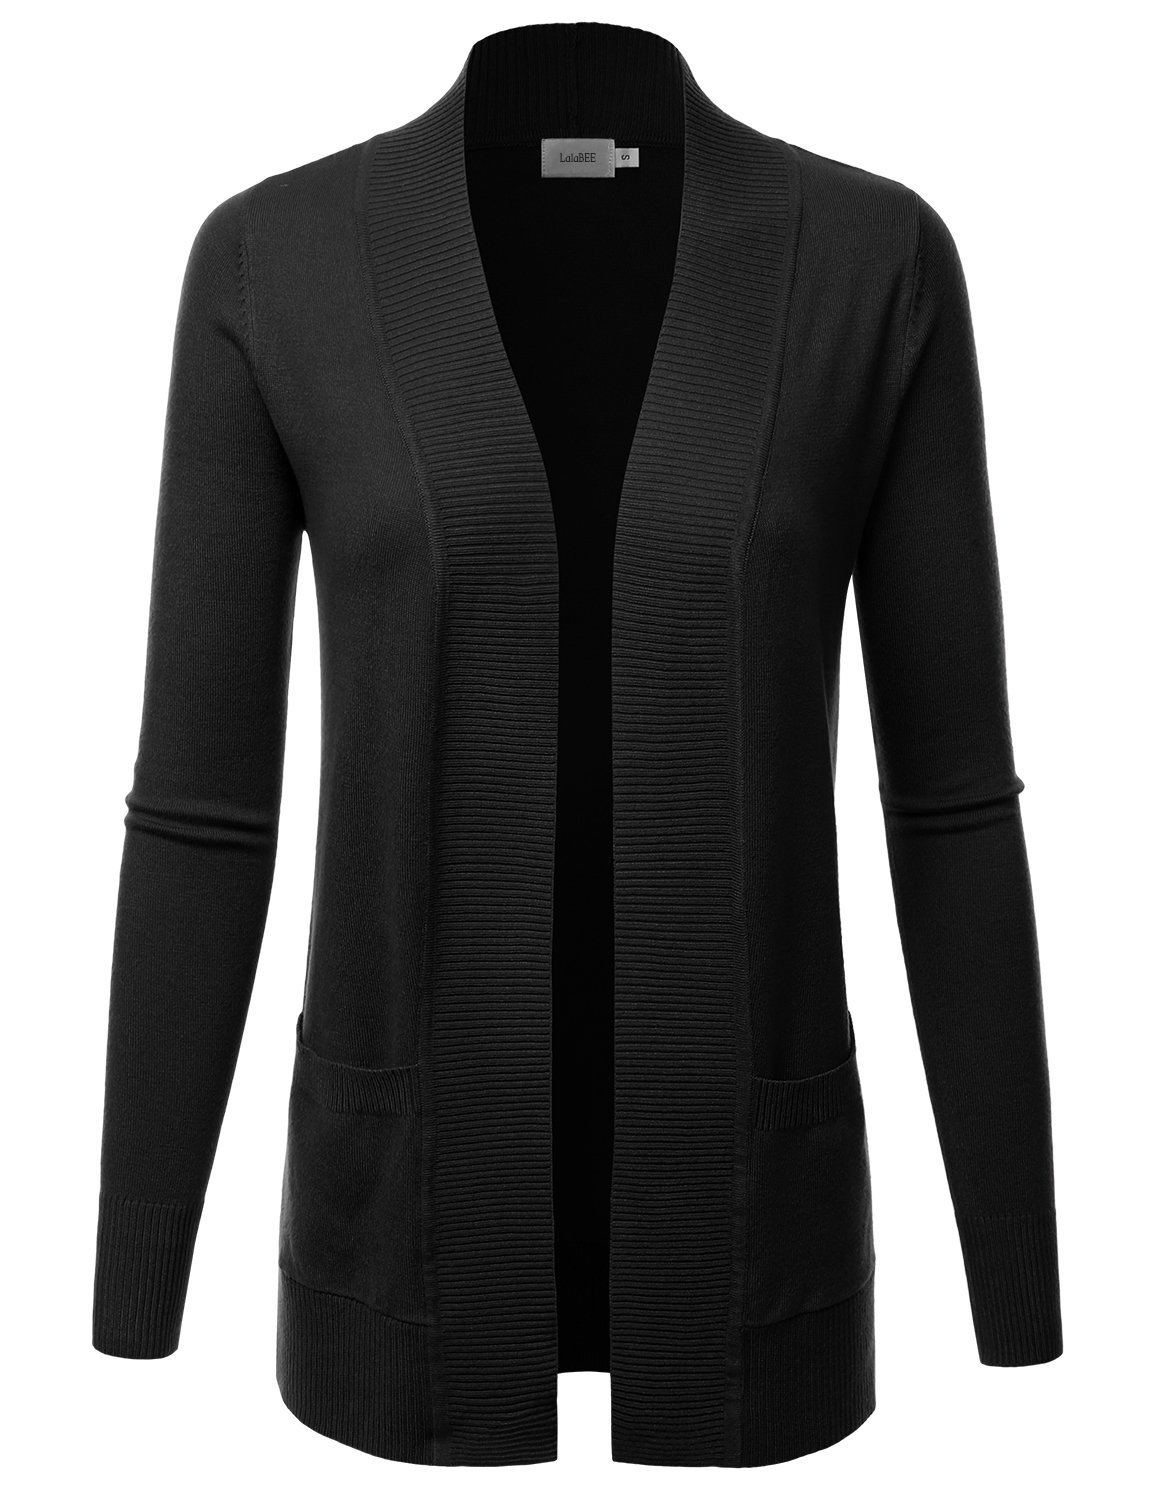 LALABEE Women's Open Front Pockets Knit Long Sleeve Sweater Cardigan-Black-L by LALABEE